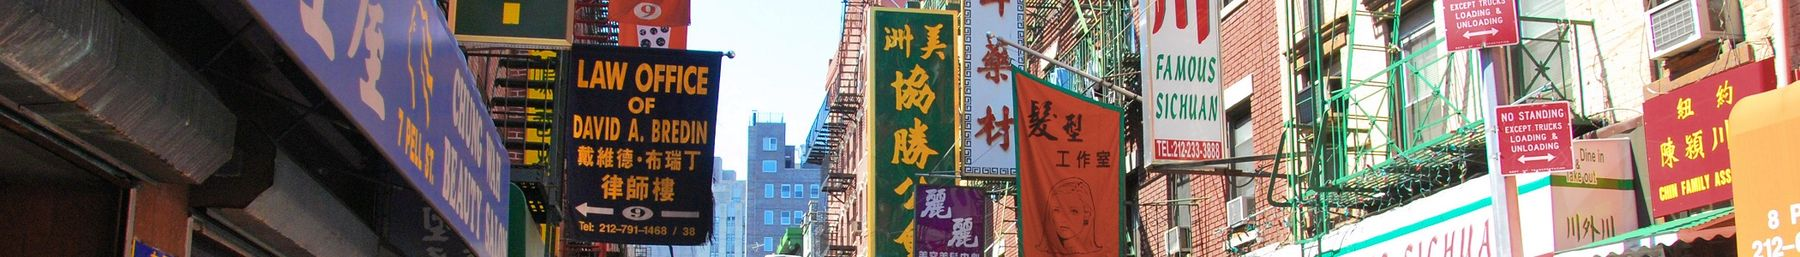 Chinatown manhattan banner.jpg